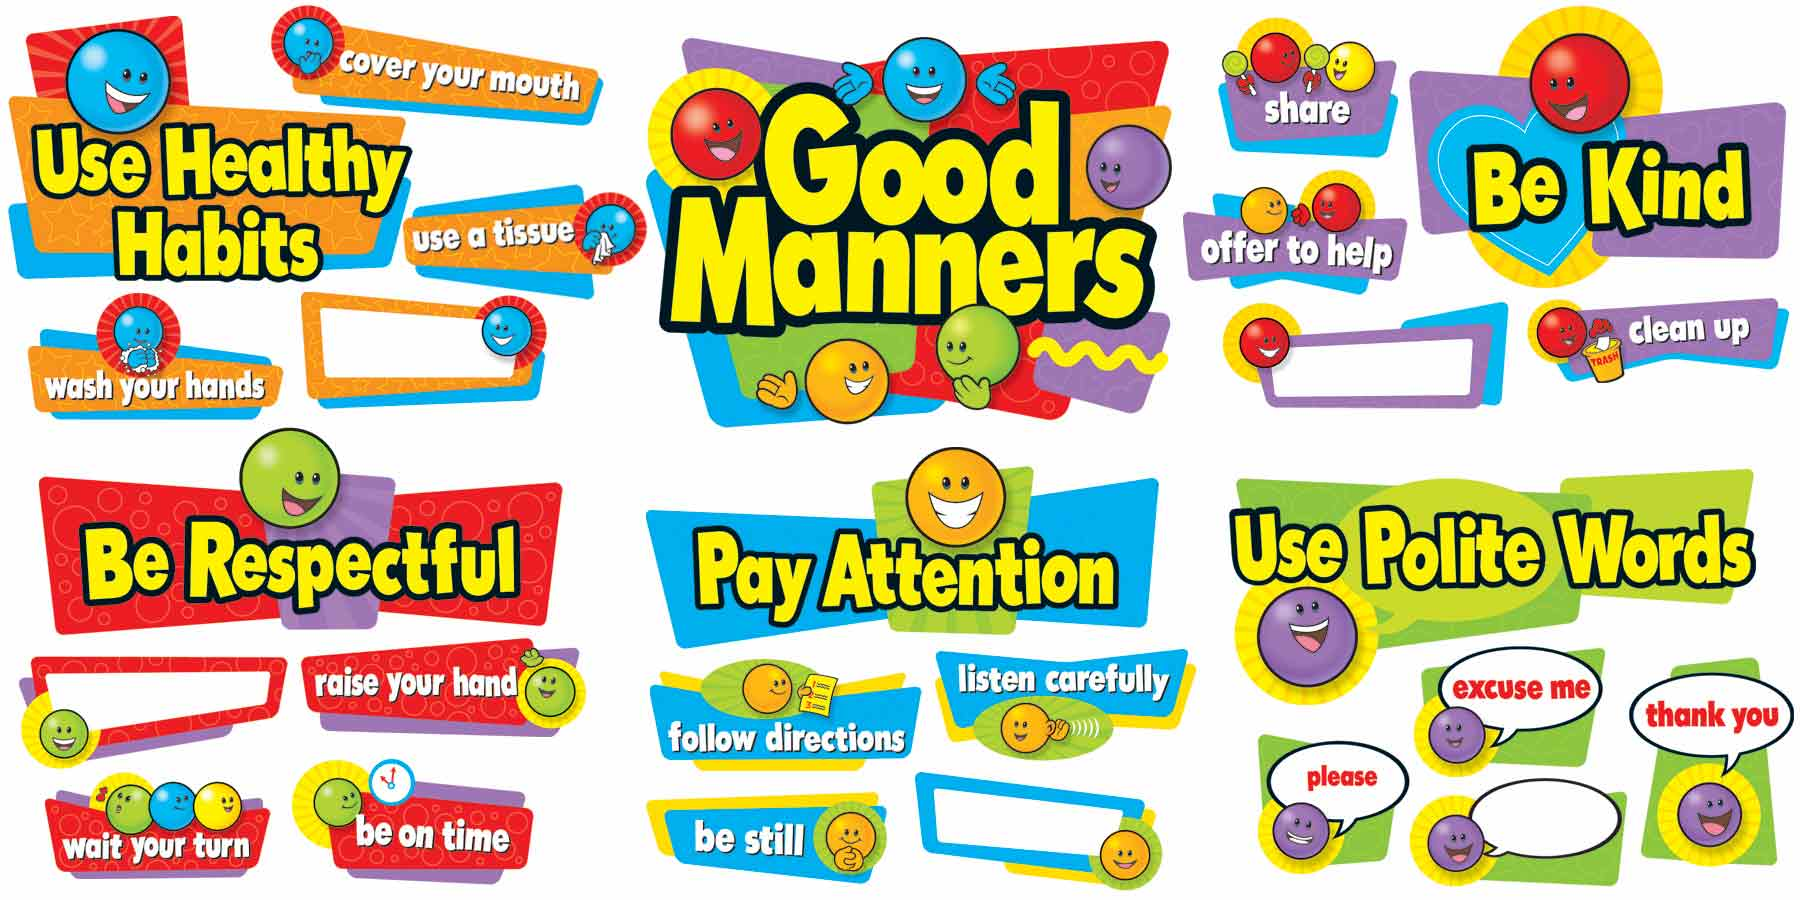 essay on good manners for kids Good manners essay for class 1, 2, 3, 4, 5, 6, 7, 8, 9, 10, 11 and 12 find  paragraph, long and short essay on good manners in english language for  children.